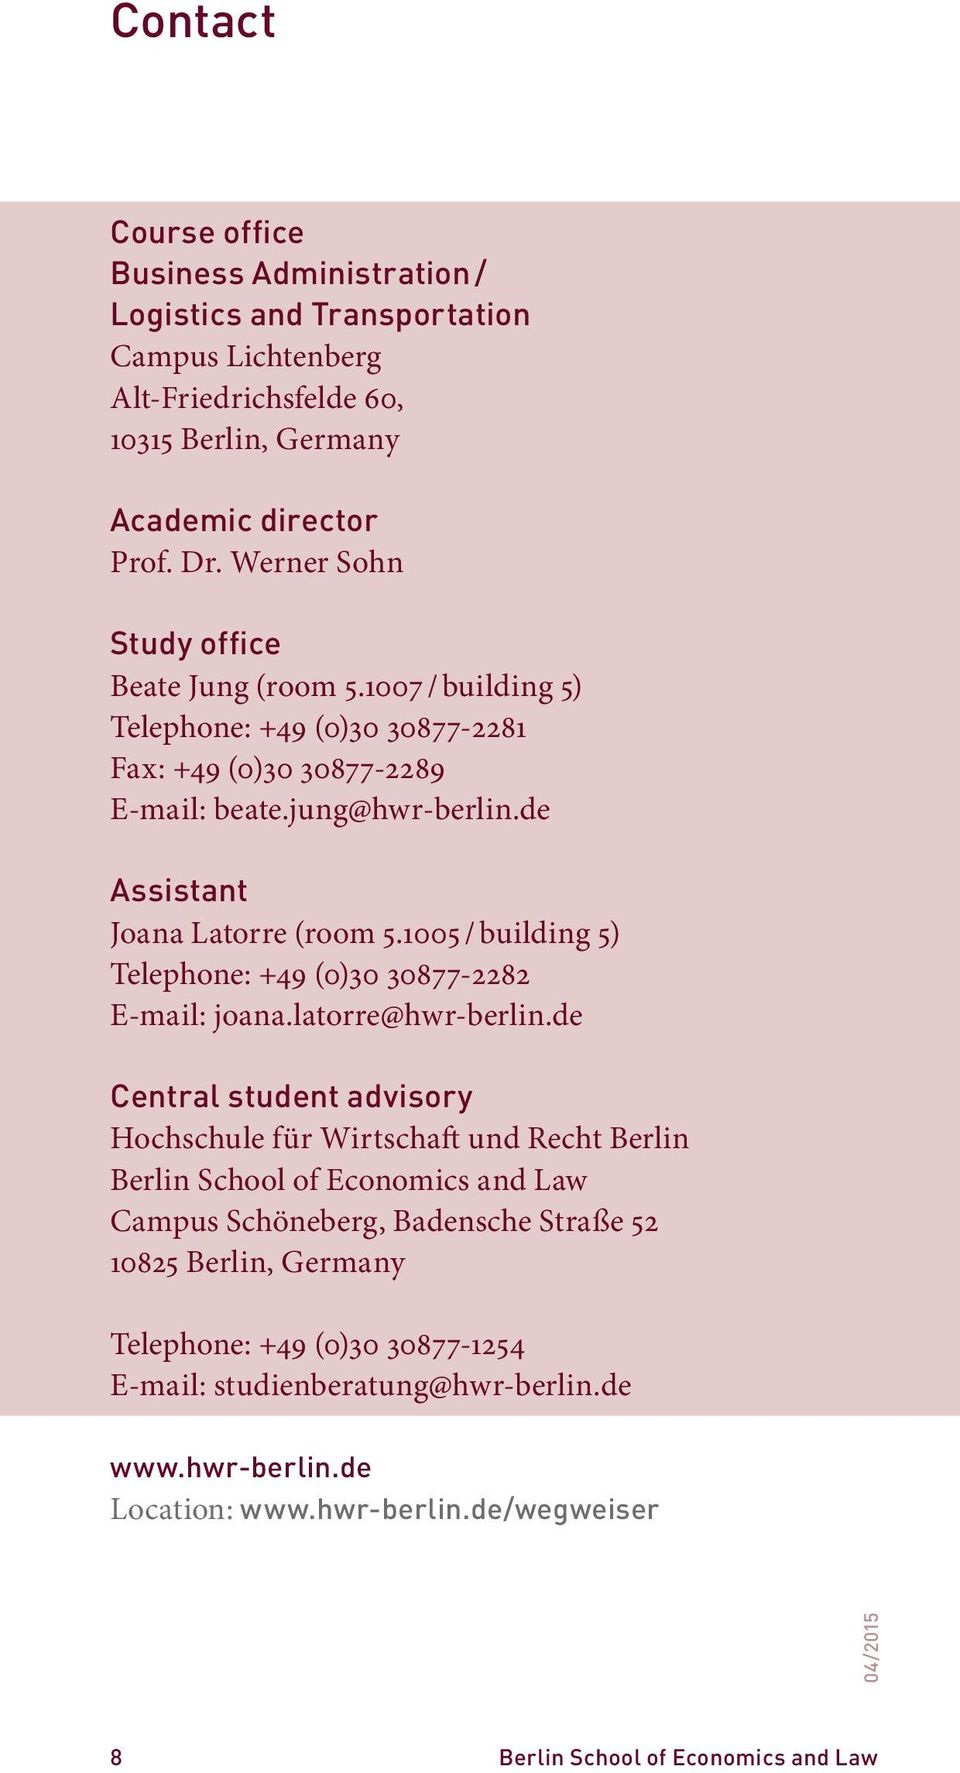 1005 / building 5) Telephone: +49 (0)30 30877-2282 E-mail: joana.latorre@hwr-berlin.